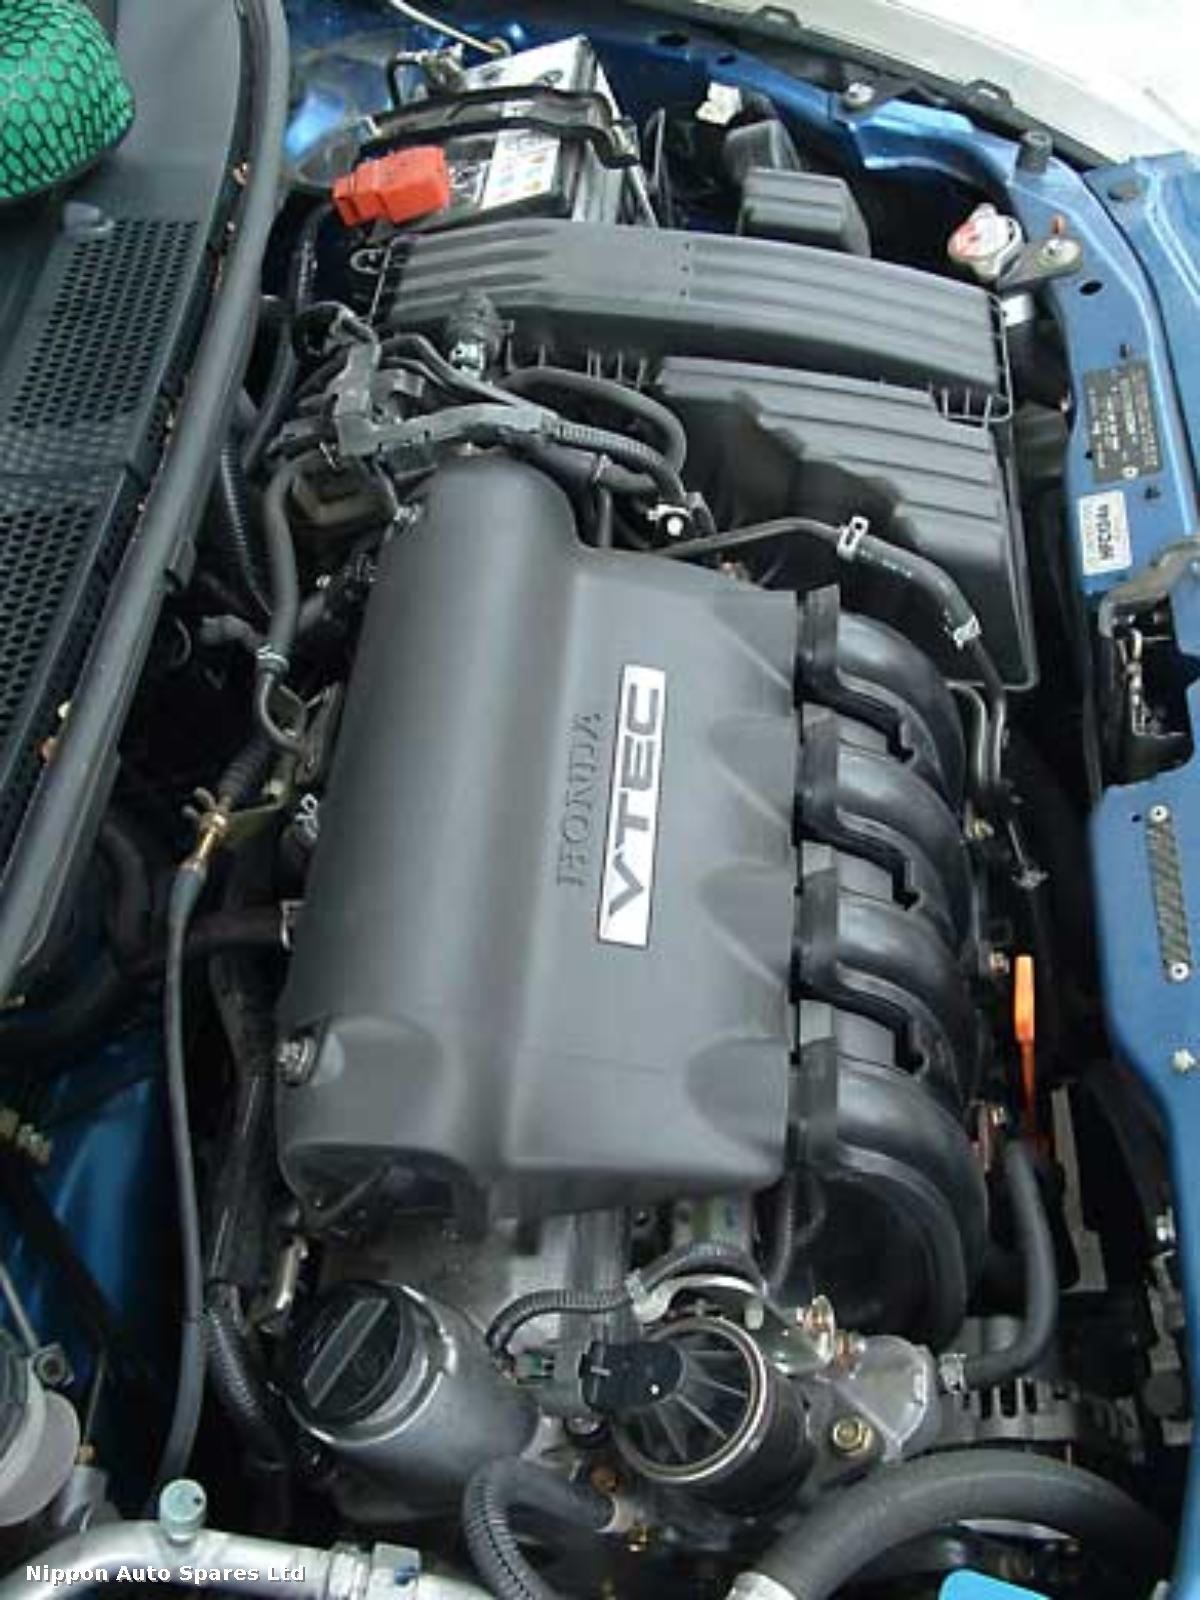 Honda JAZZ Engine L15A AUTO: 636